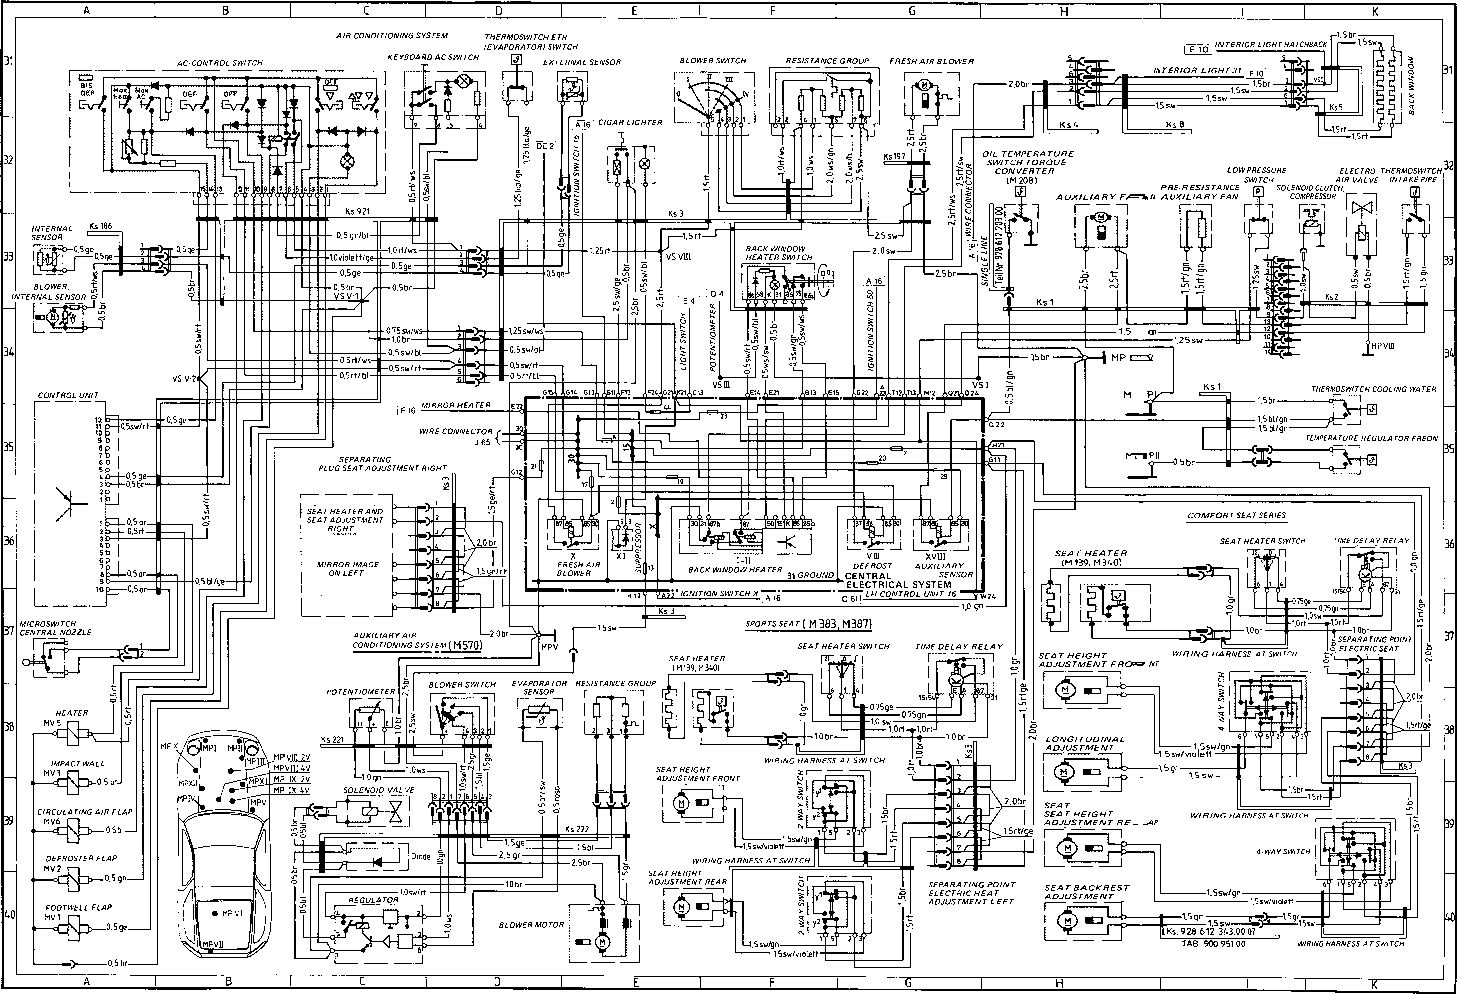 1984 Porsche 944 Wiring Diagram - 6.stiveca.nl • on pinout diagrams, battery diagrams, sincgars radio configurations diagrams, electronic circuit diagrams, electrical diagrams, friendship bracelet diagrams, engine diagrams, honda motorcycle repair diagrams, led circuit diagrams, lighting diagrams, internet of things diagrams, snatch block diagrams, gmc fuse box diagrams, troubleshooting diagrams, hvac diagrams, motor diagrams, transformer diagrams, smart car diagrams, switch diagrams, series and parallel circuits diagrams,